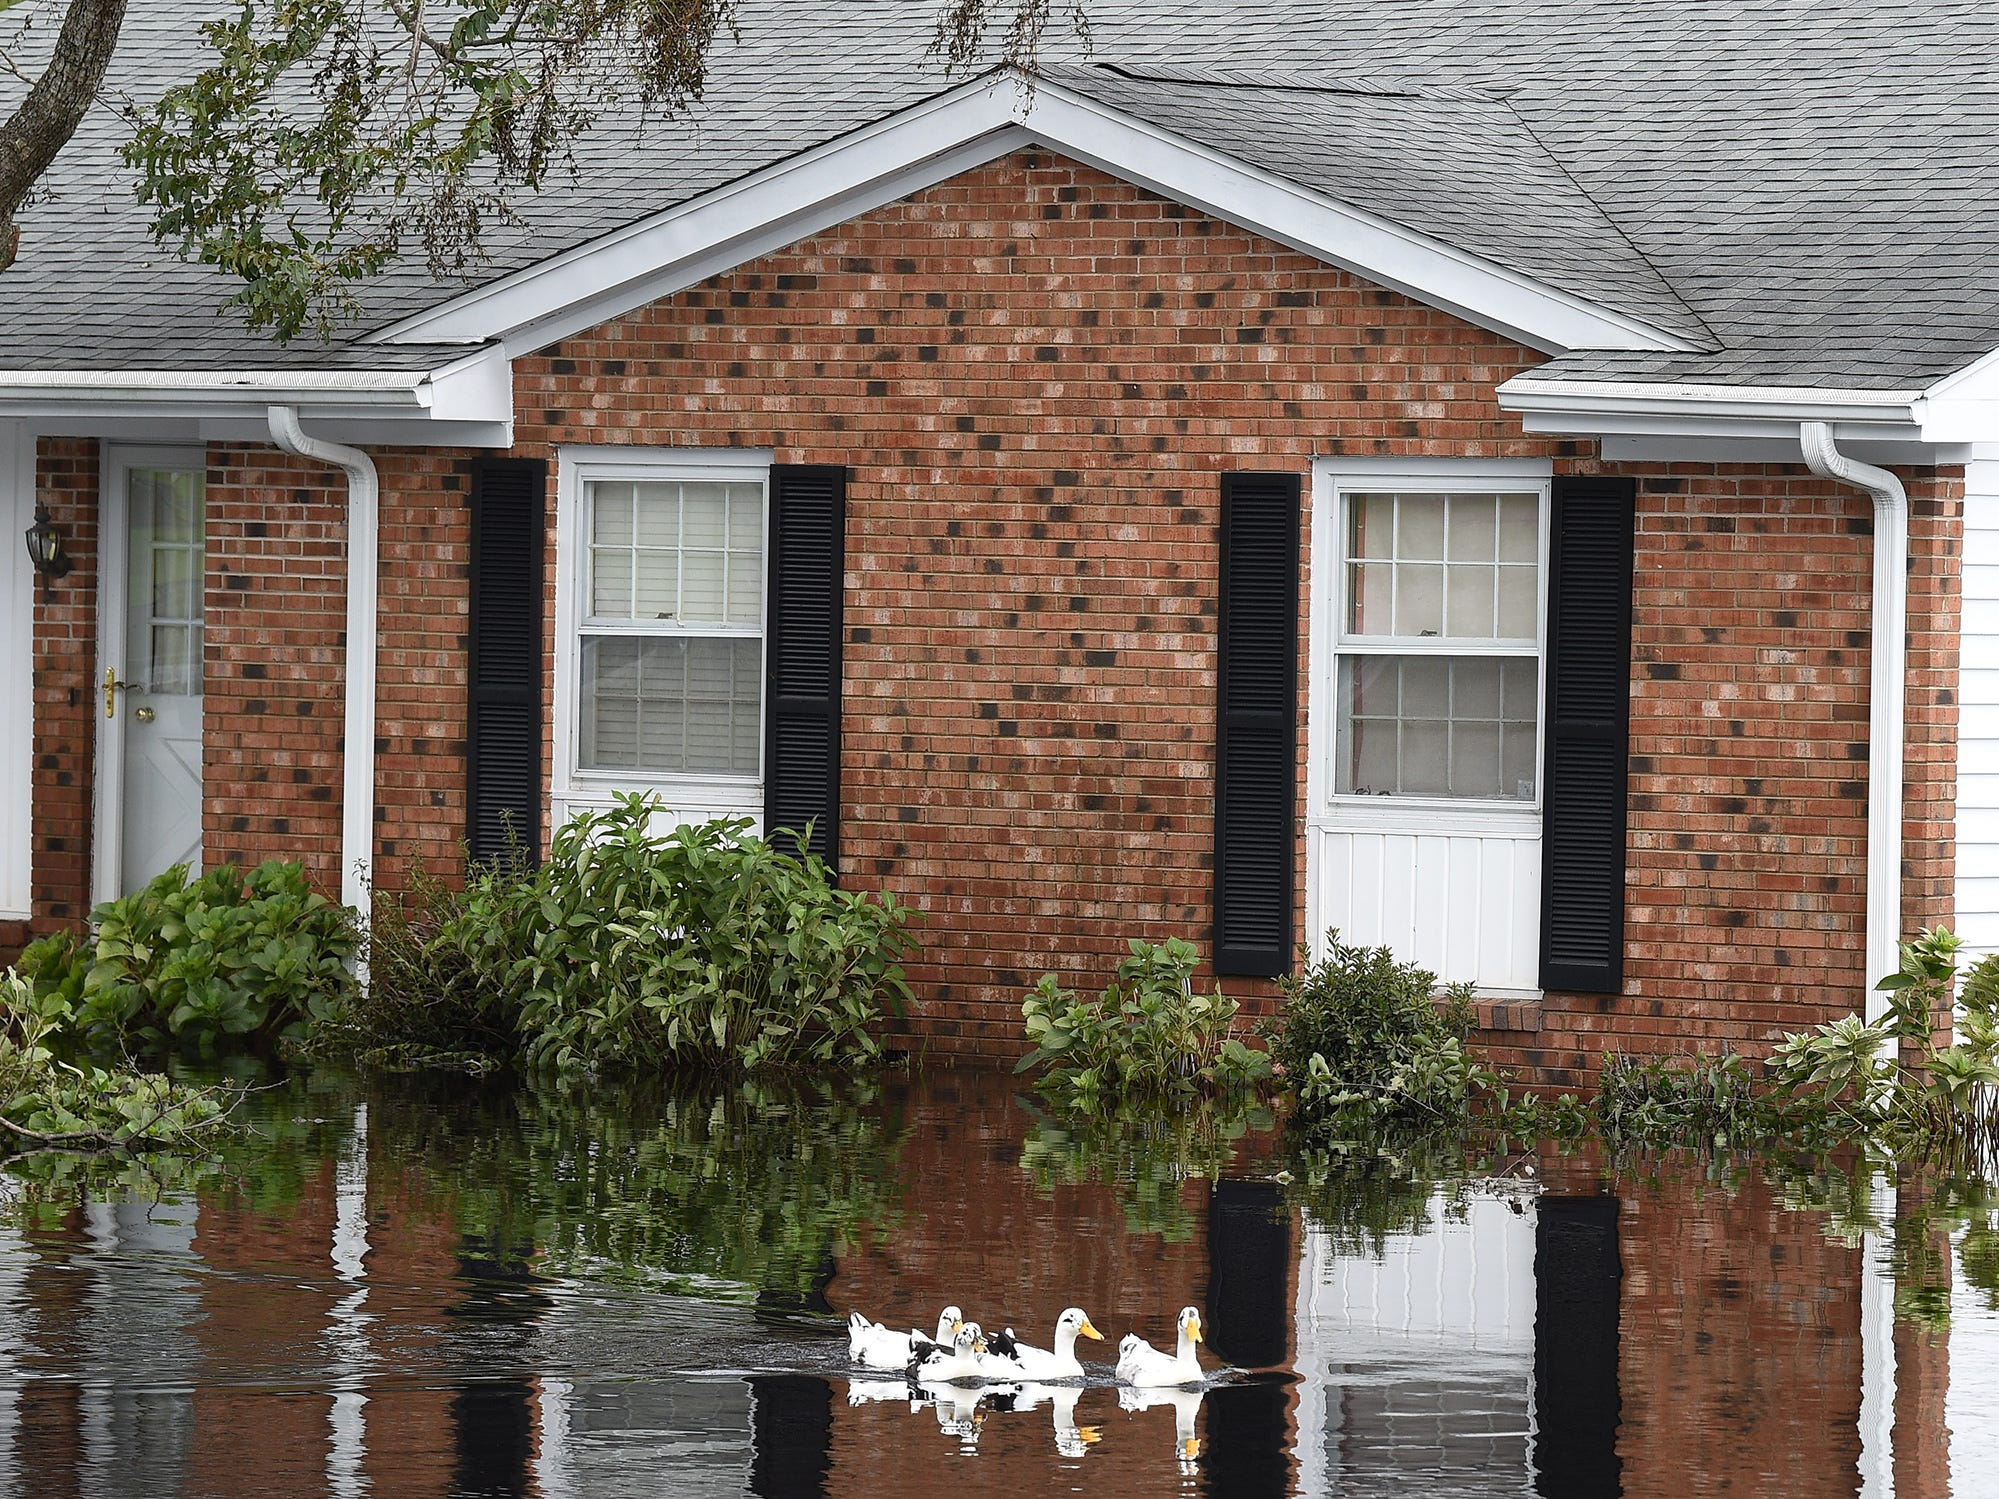 Ducks swim in a flooded neighborhood in Newport, N.C., on Monday, Sept. 17, 2018.